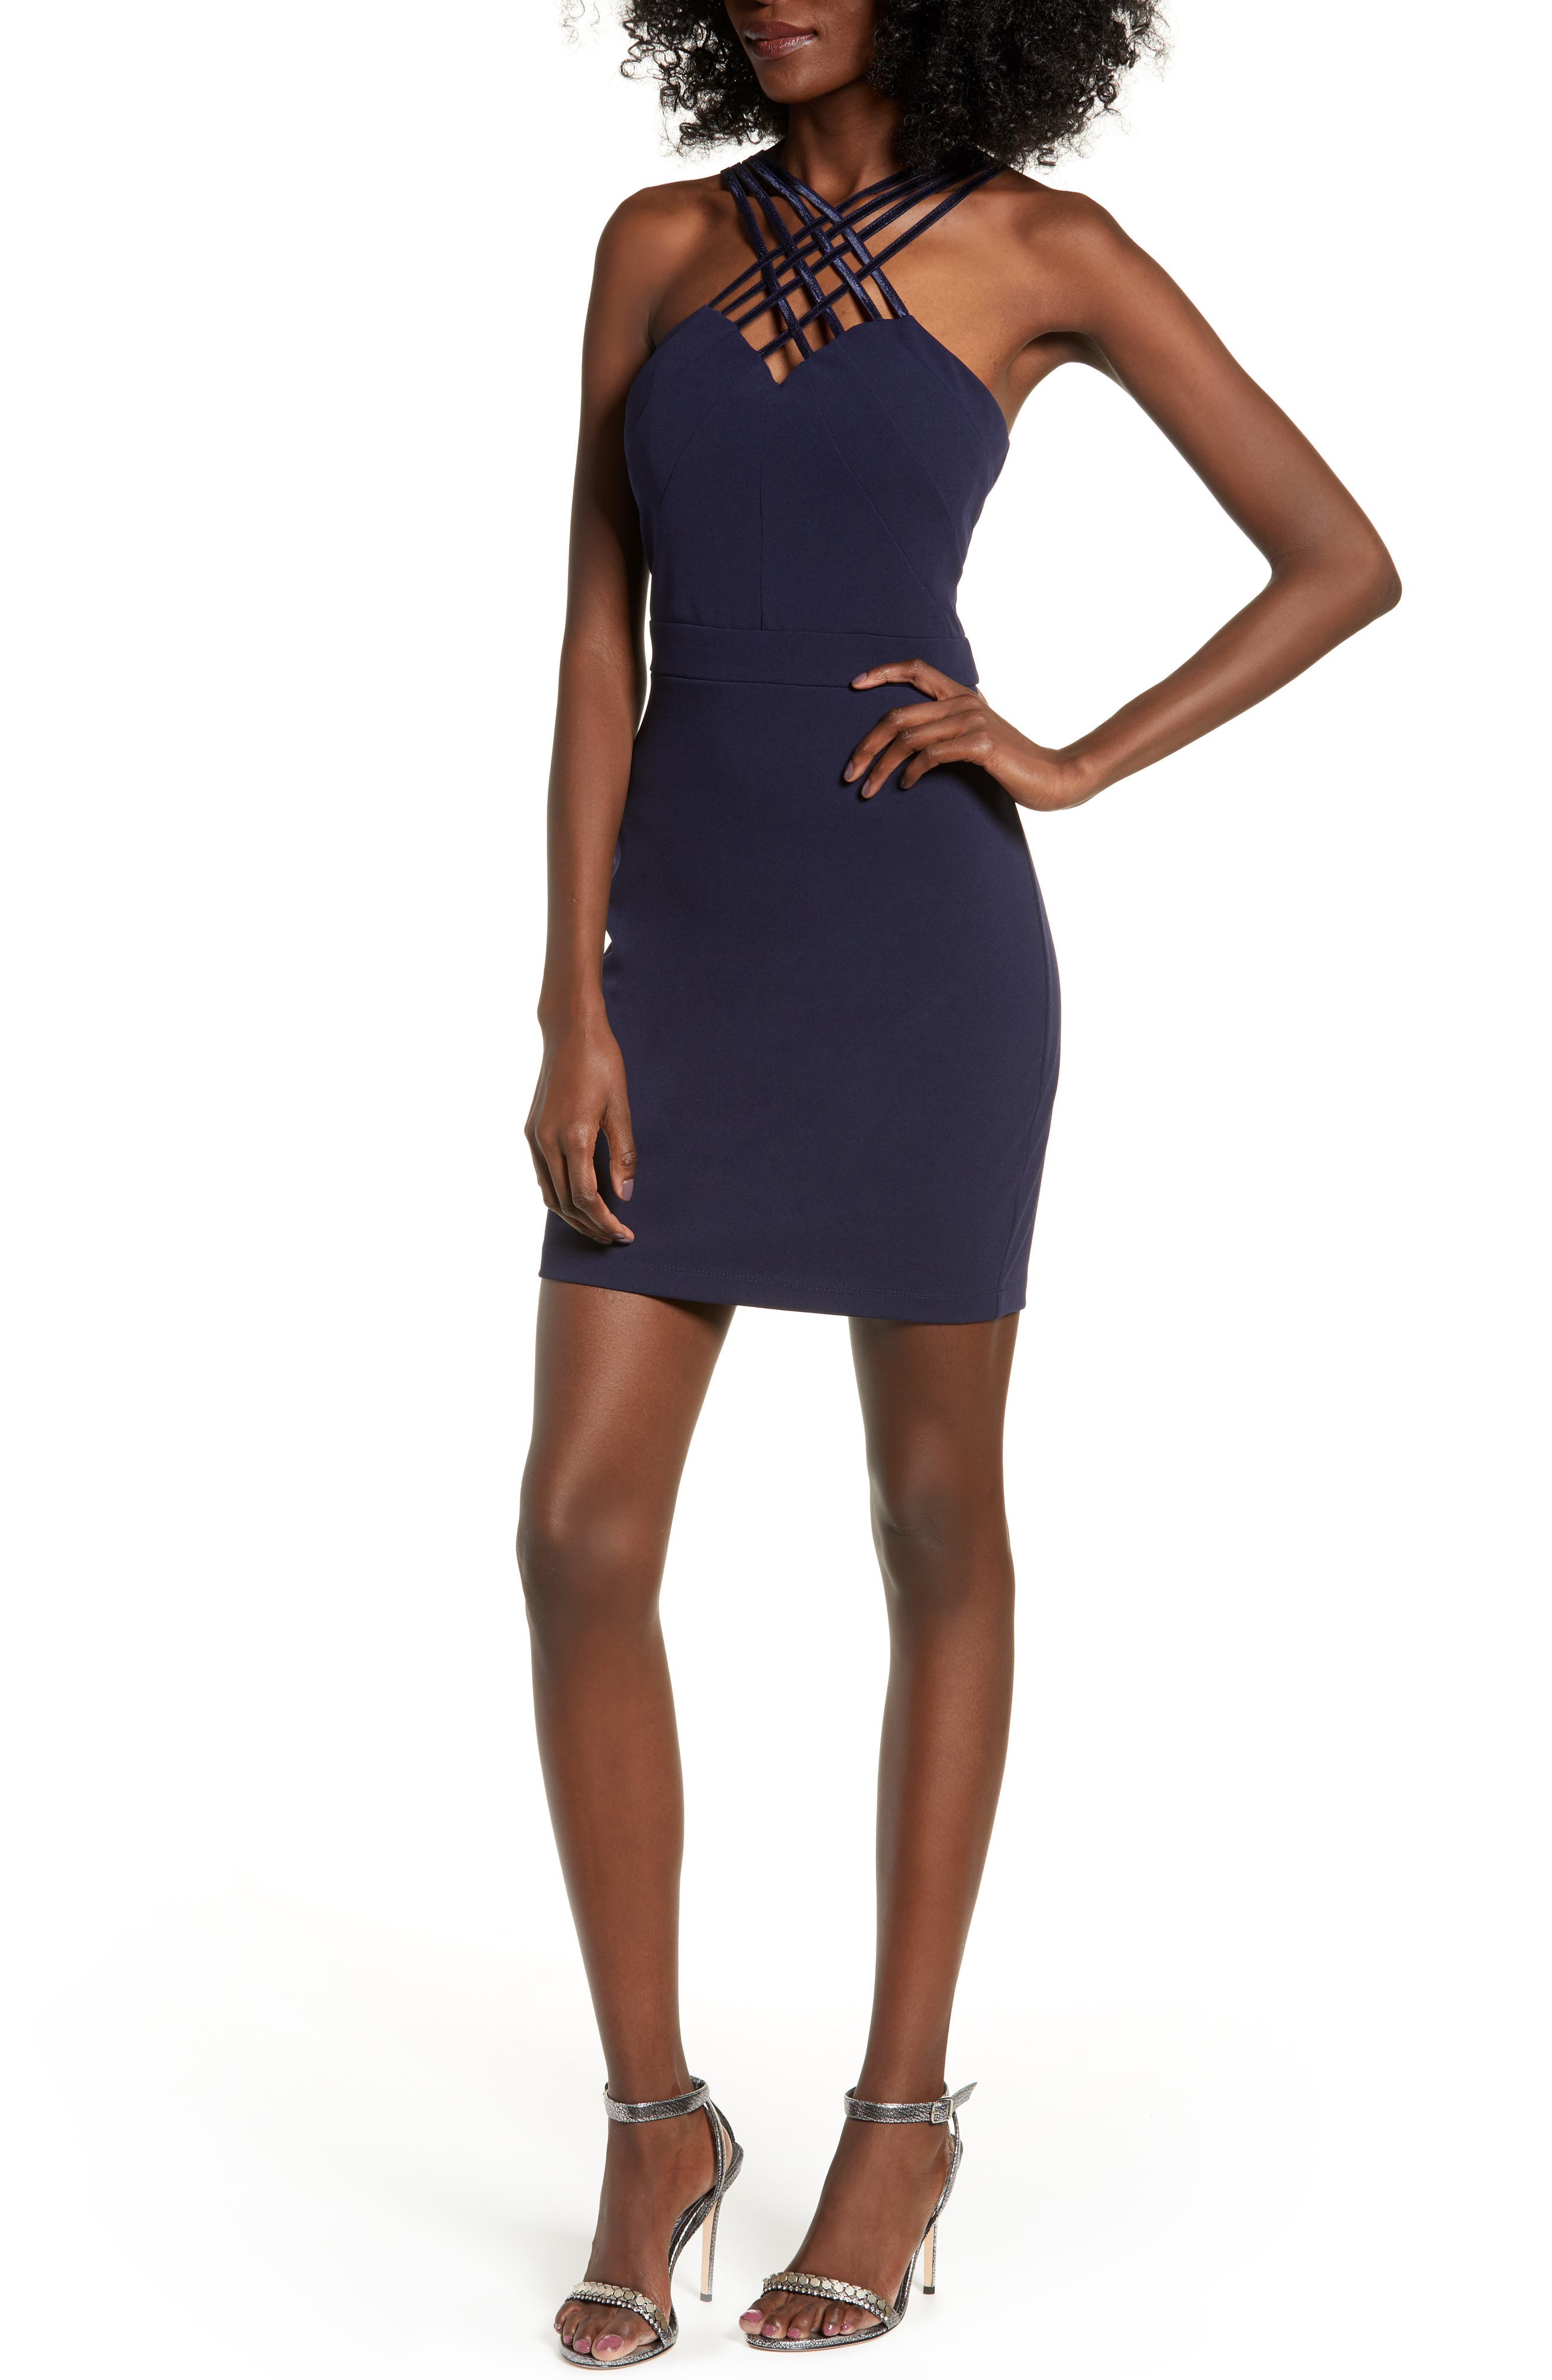 LOVE, NICKIE LEW Lattice Strap Body-Con Dress, Main, color, 400